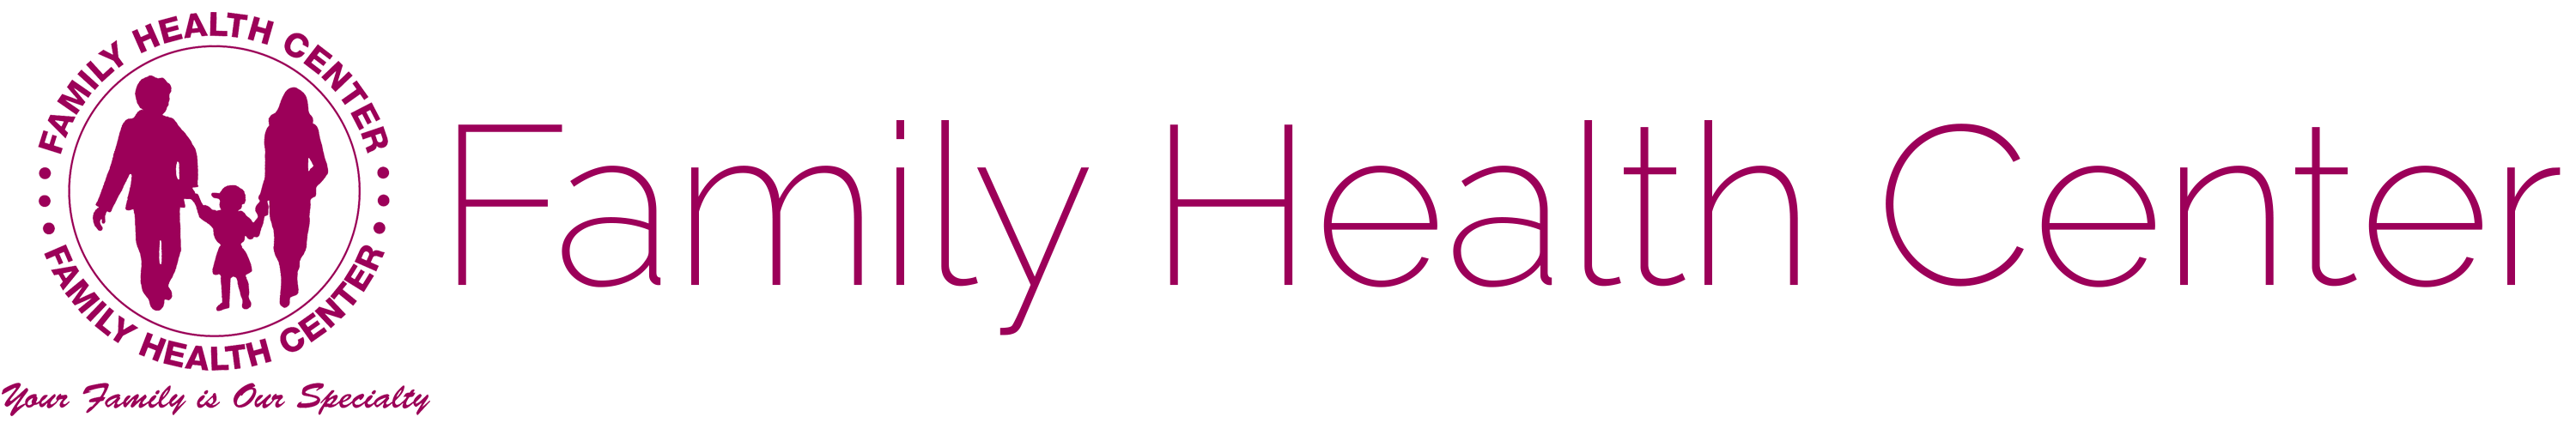 Family Health Center Logo